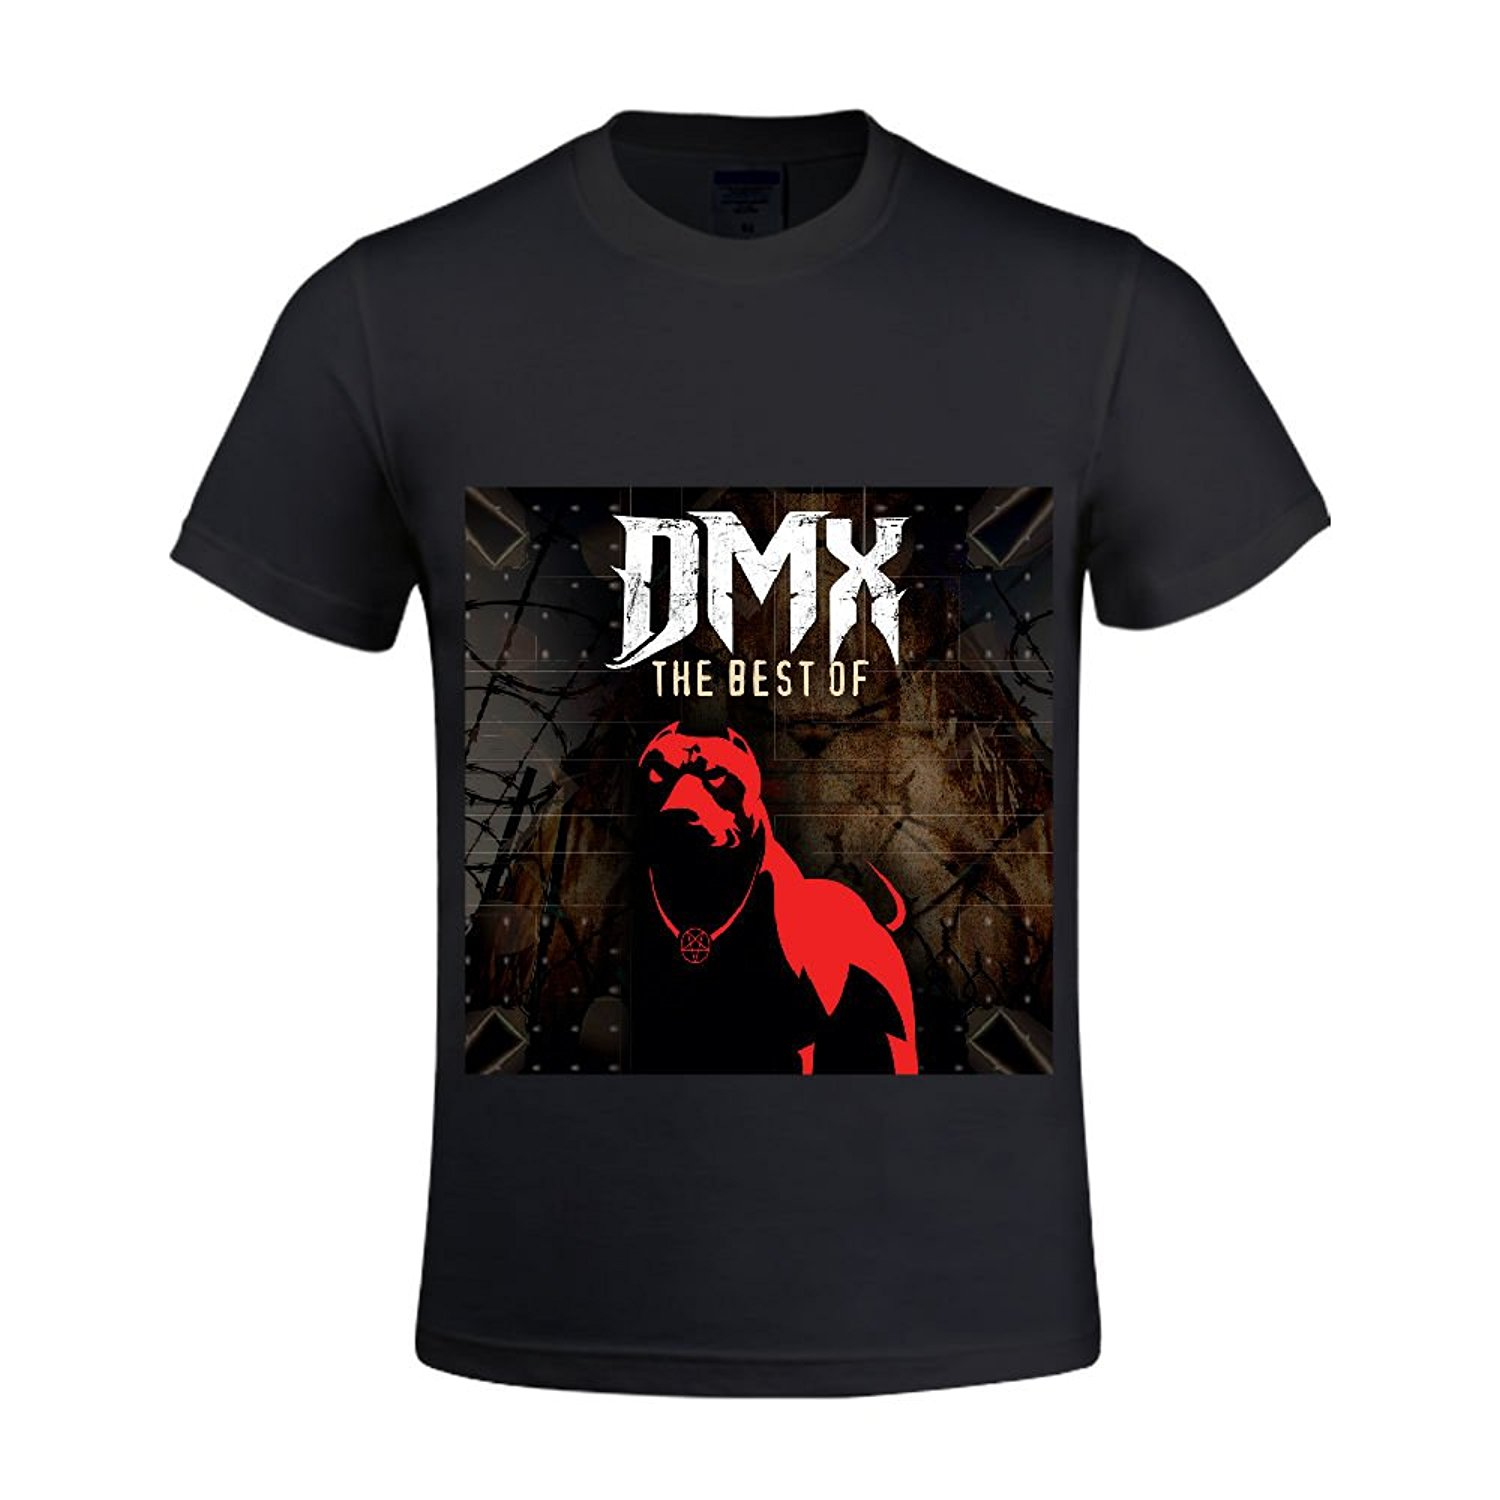 New DMX Ruff Ryders Anthem Rap Hip Hop Music Men 39 s Black T Shirt Size S To 3XL Summer Fashion Funny Print T Shirts in T Shirts from Men 39 s Clothing